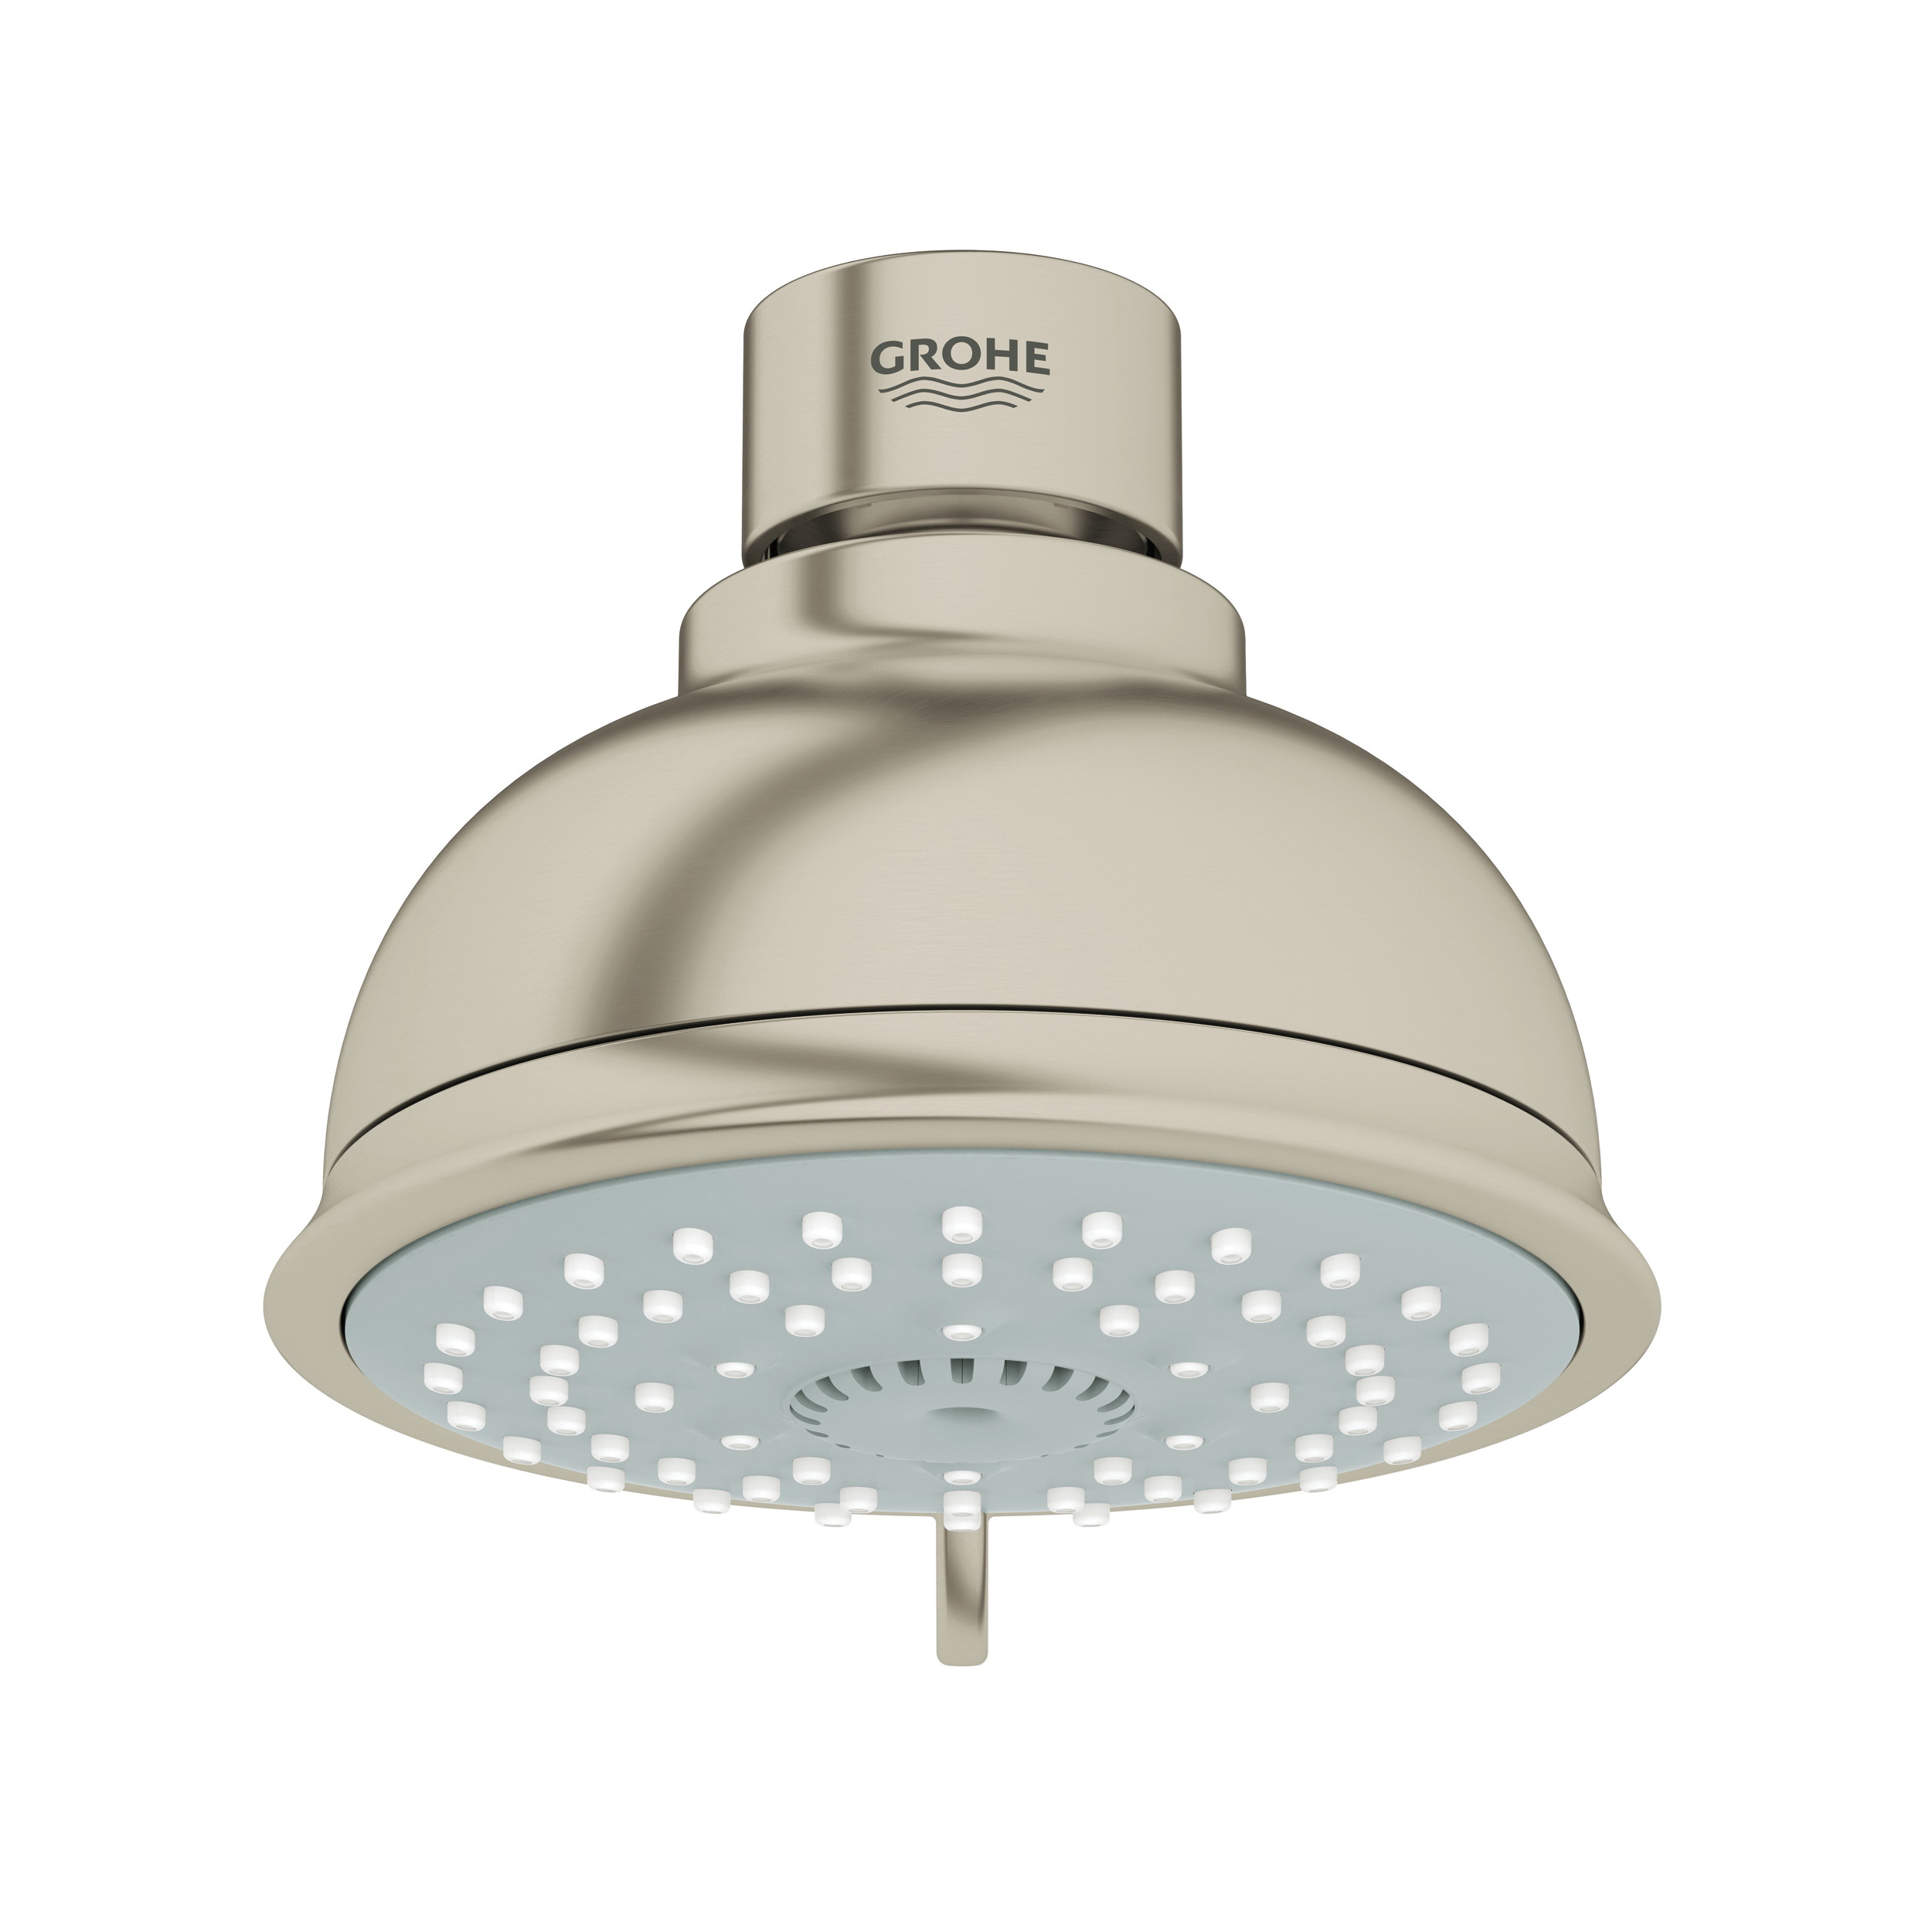 GROHE 26045EN0 New Tempesta® Rustic 100 Shower Head, 2 gpm, 4 Sprays, Wall Mount, 3.93 in Head, Import